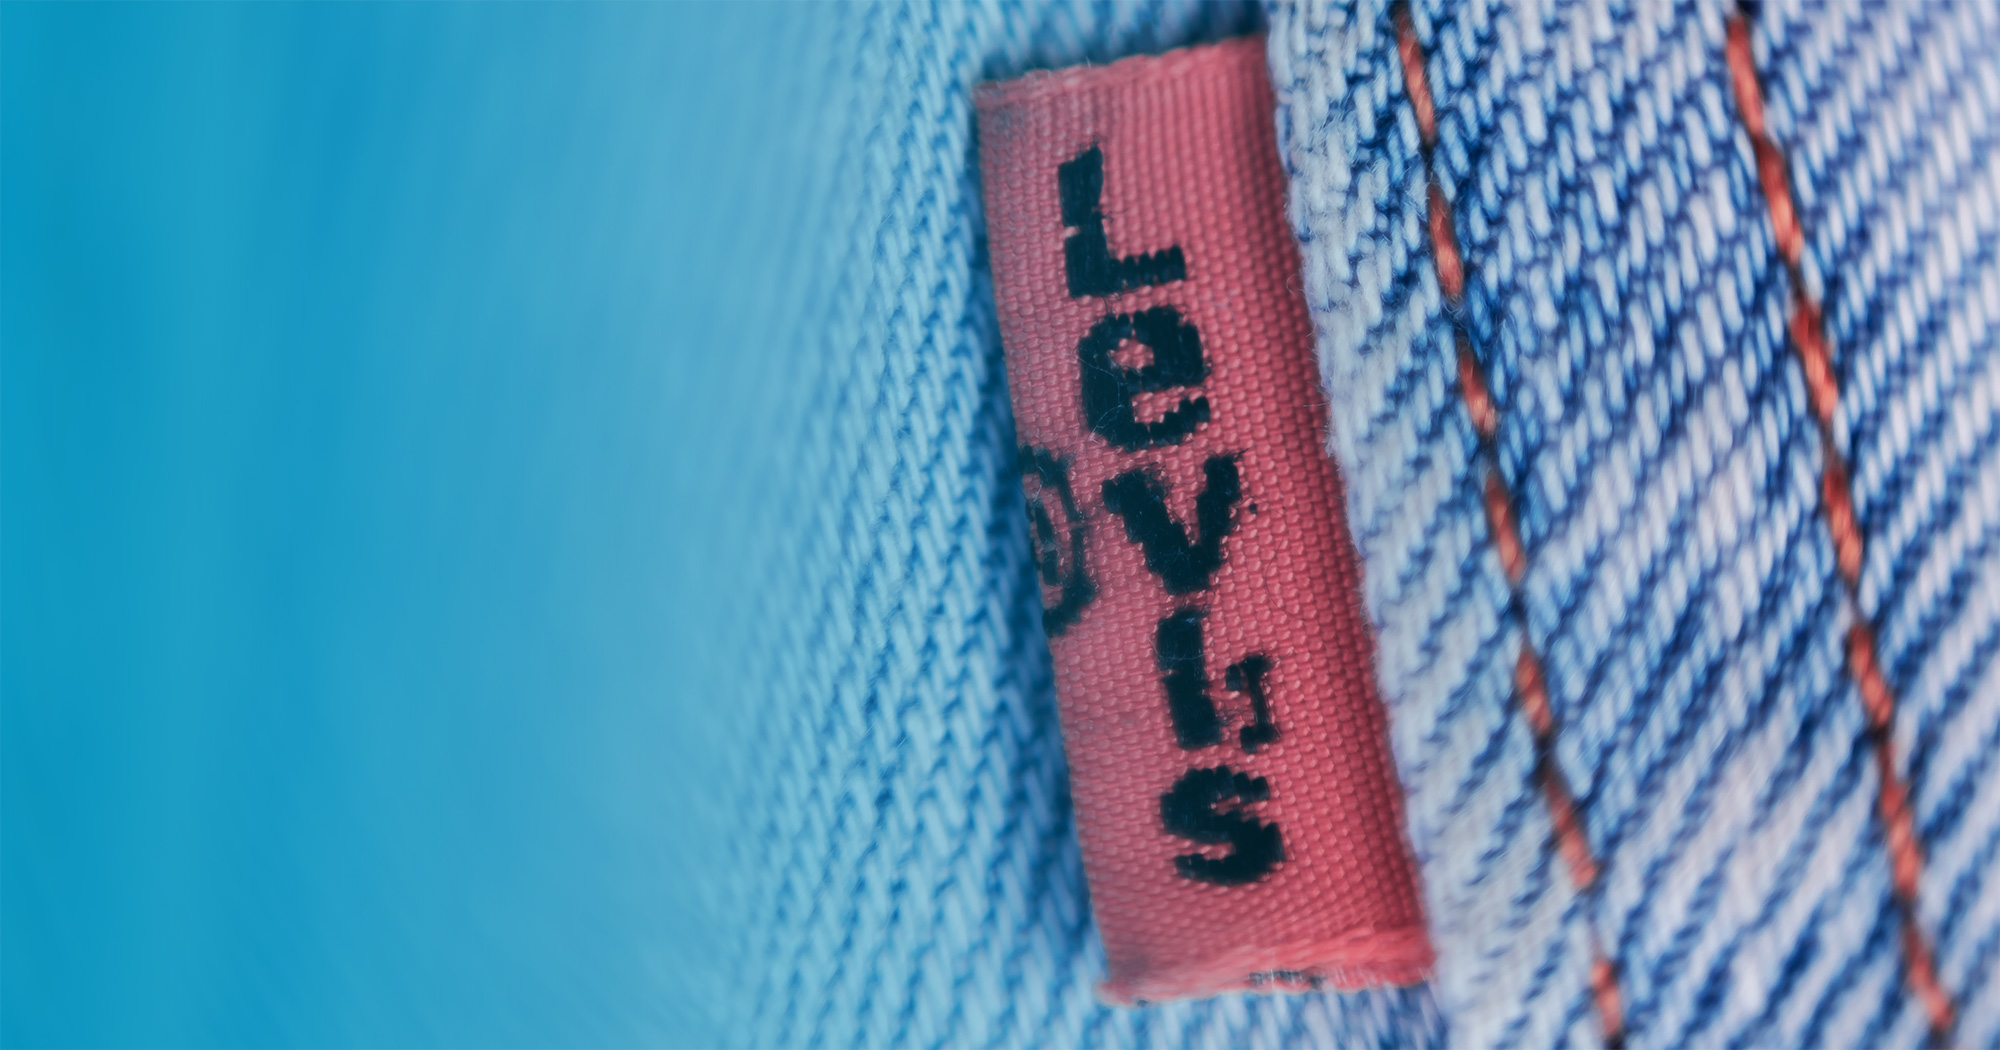 Close up of Levi's tag on jeans